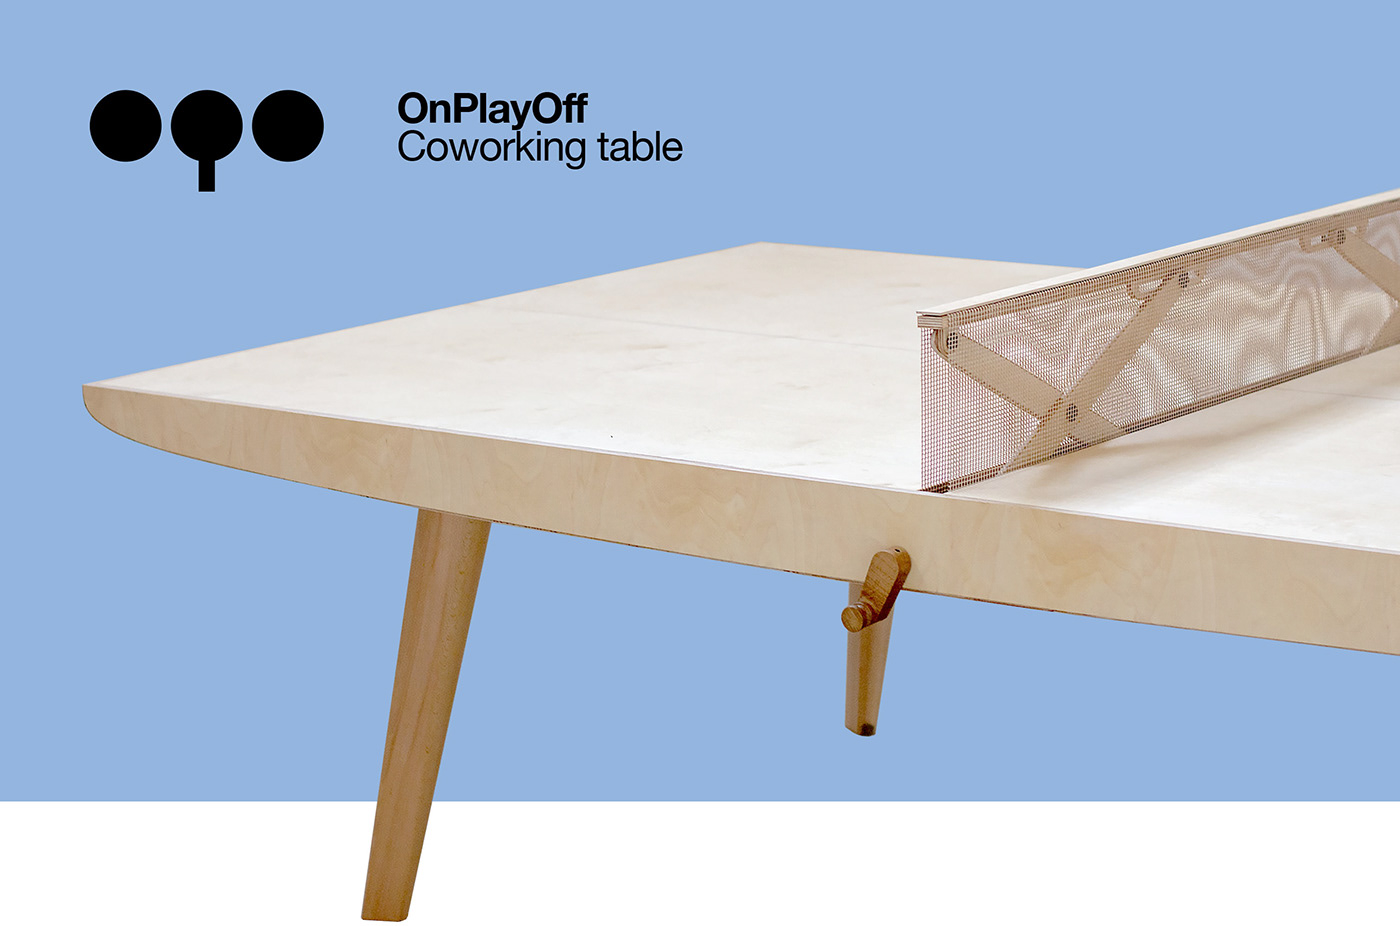 coworking creative design i+d innovation ping pong play product table wood